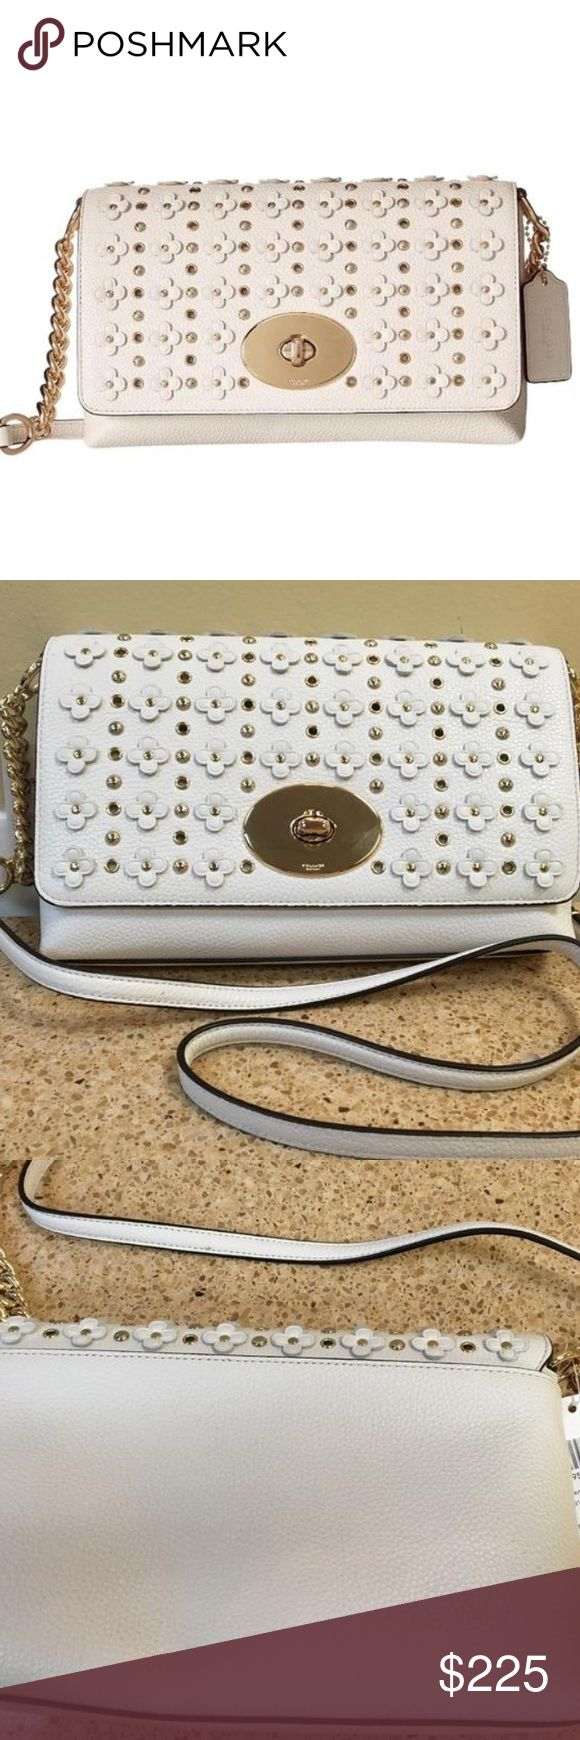 """Coach Crosstown Crossbody in Floral Rivets Leather Coach Crosstown Crossbody in Floral Rivets Leather in Chalk. Style Number: 37704 Floral rivets, grommets and studs add downtown edge to a chic pebble leather design finished with a richly plated update of the iconic Coach turnlock. Sling it over your shoulder or wear it crossbody for effortless on-the-go style.  Polished pebble leather Inside multifunction pockets Turnlock closure, fabric lining Strap with 22"""" drop for shoulder or crossbody…"""